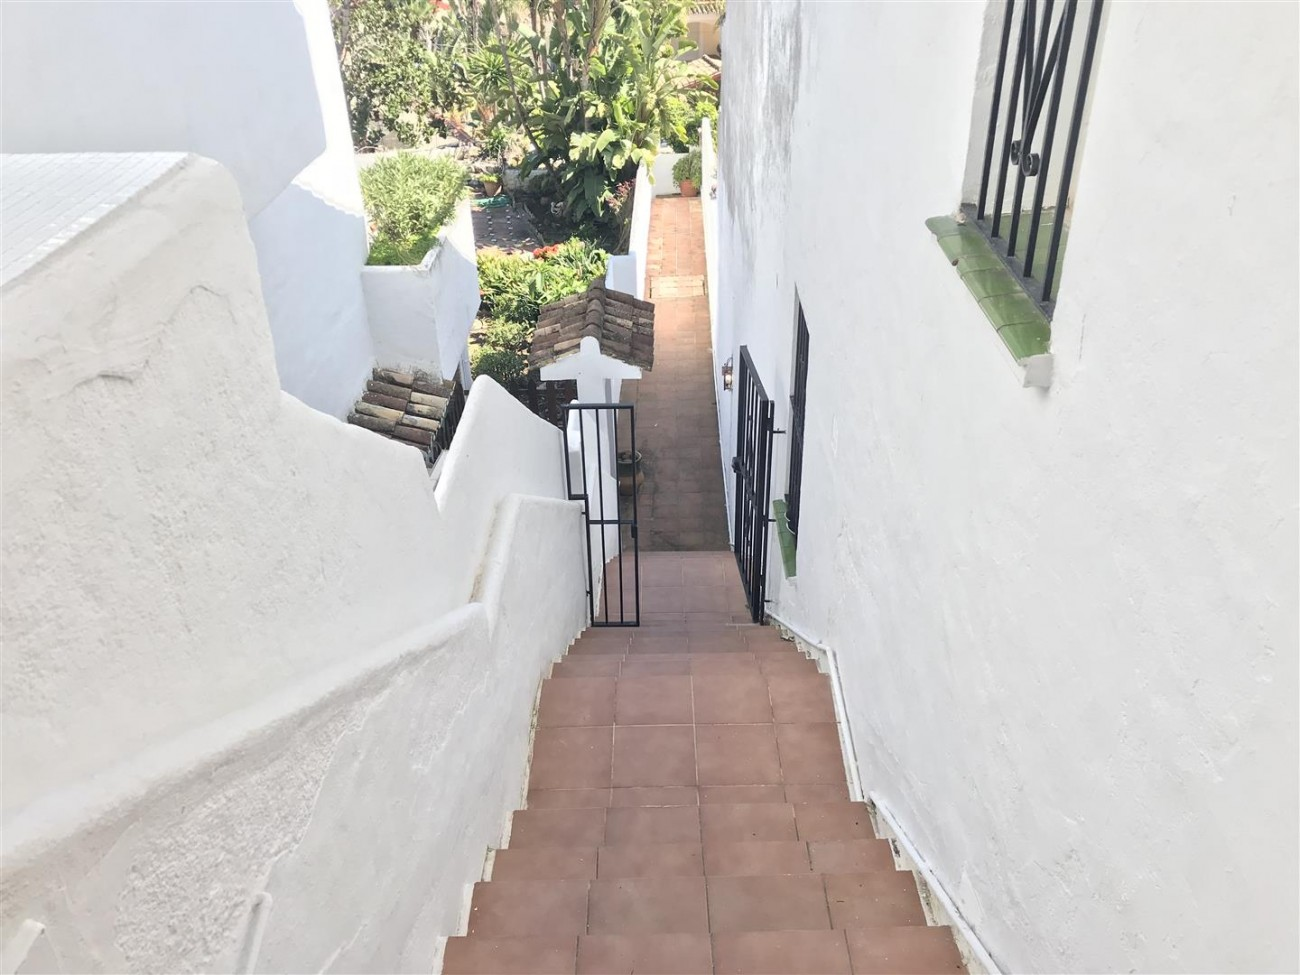 Townhouse for sale cloe to Puerto Banus Marbella Spain (1)